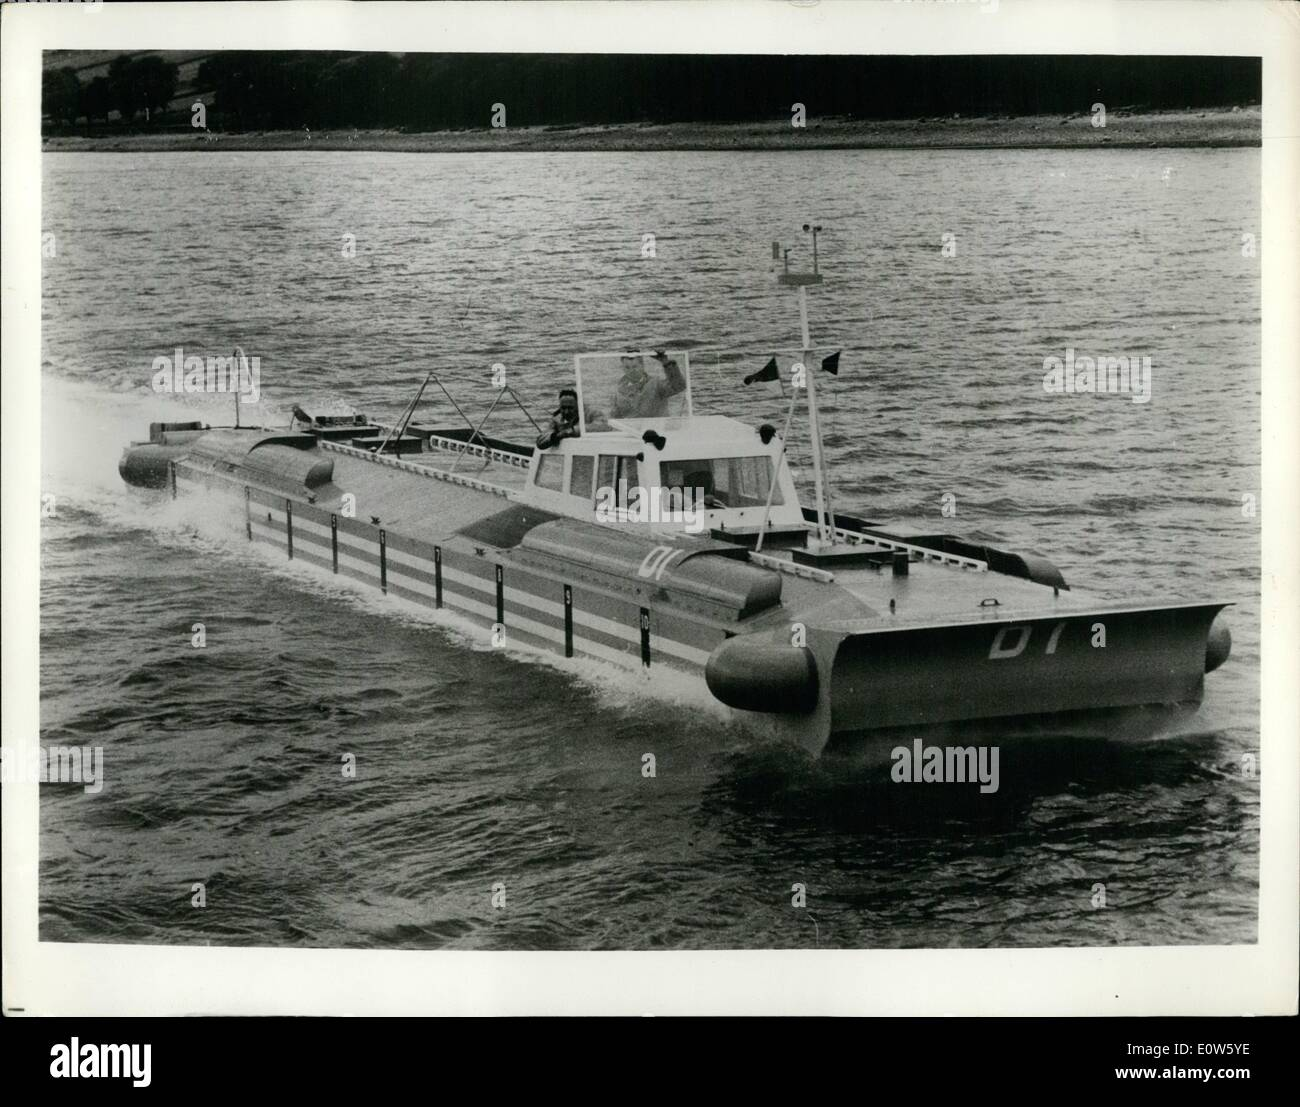 Jul. 07, 1961 - Hovering Ship: Undergoing trials on Gare Loch, Scotland, is the D1, a 60 feet, experimental prototype ''hover ship''. Weighing 4 1/2 long tons, it has two three cylinder two cycle 25 b.h.p. engines which raise its bottom from the water while its side walls remain submerged to about six inches. Two 35 b.h.p. outboard engines with variable pitch propellers ''sled'' it across the water. Its British builders hope to have a passenger-carrying version in operation by the end of next year. - Stock Image